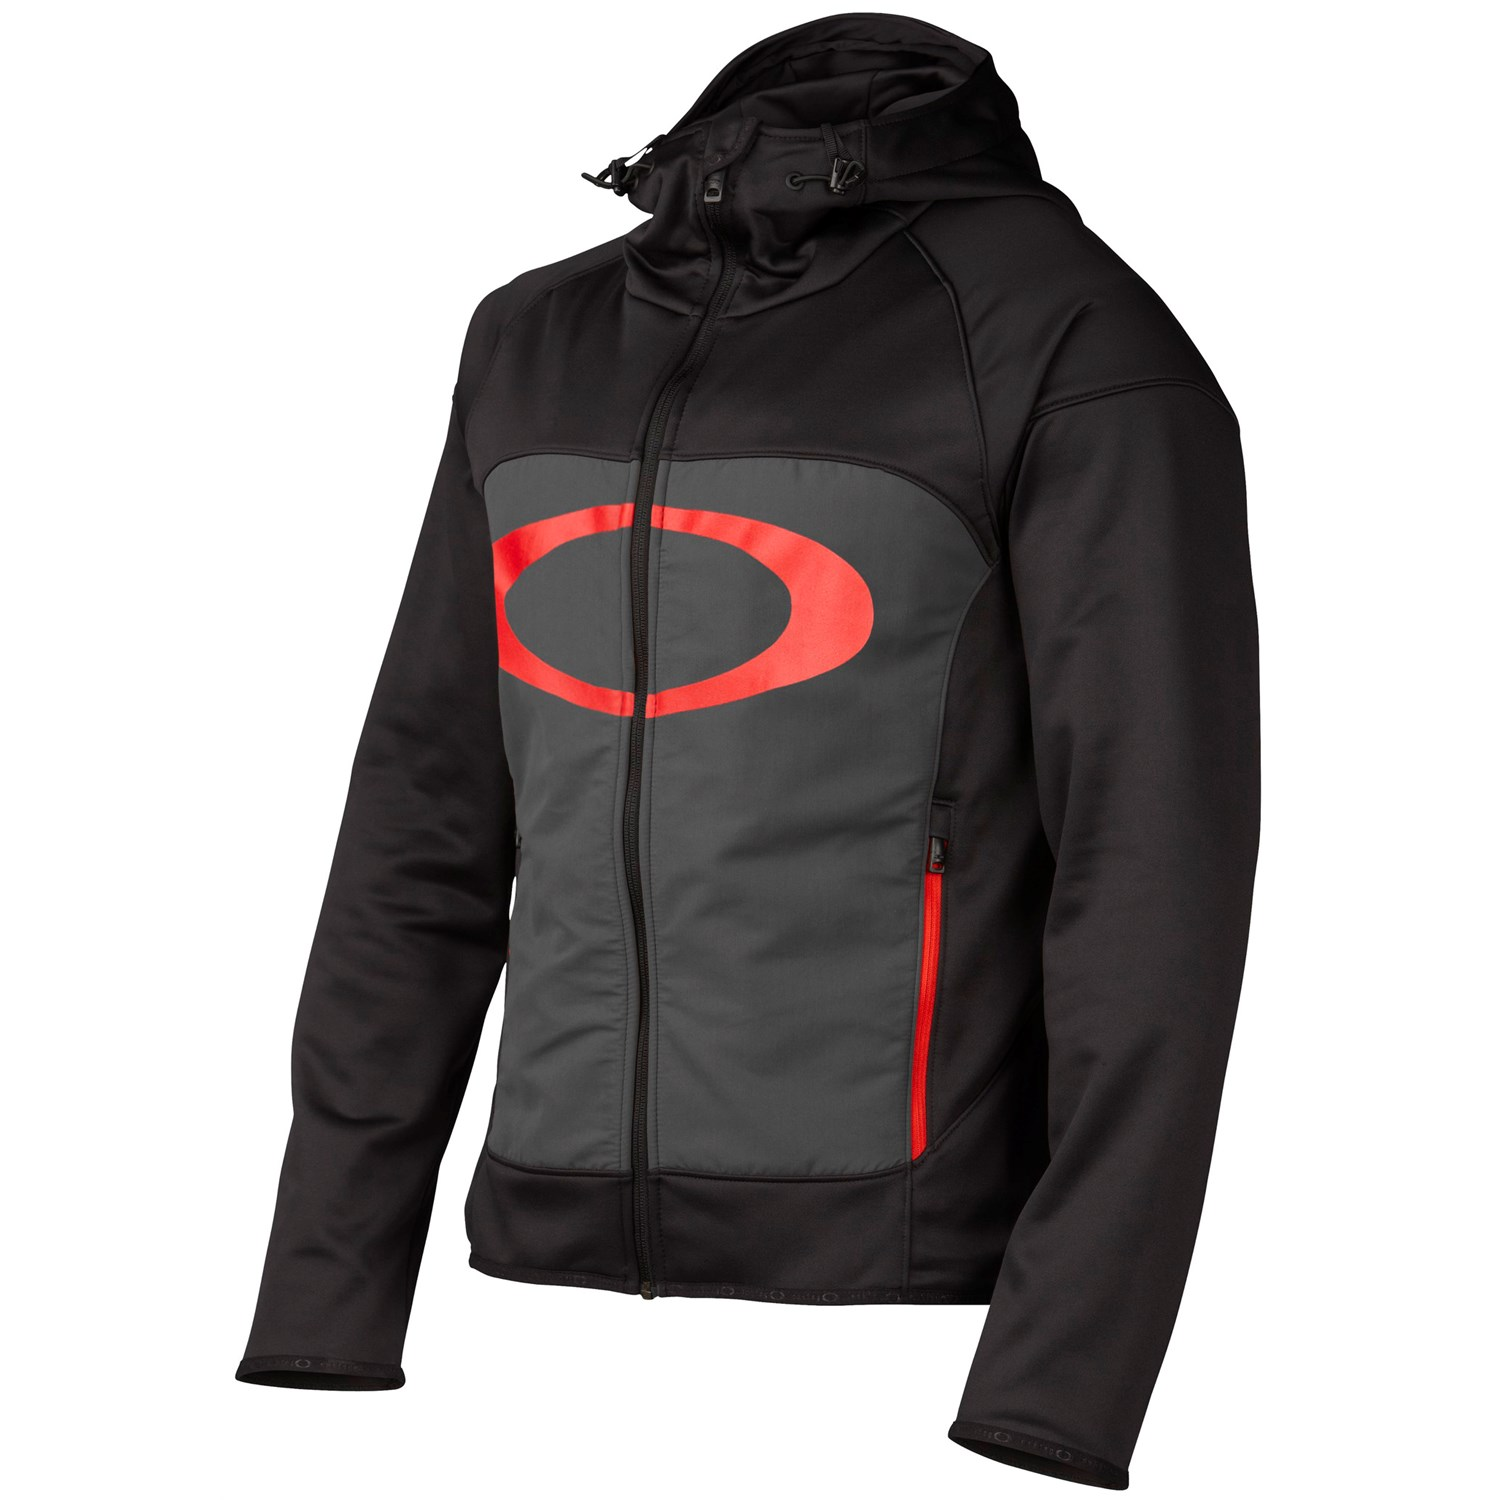 Oakley clothes online